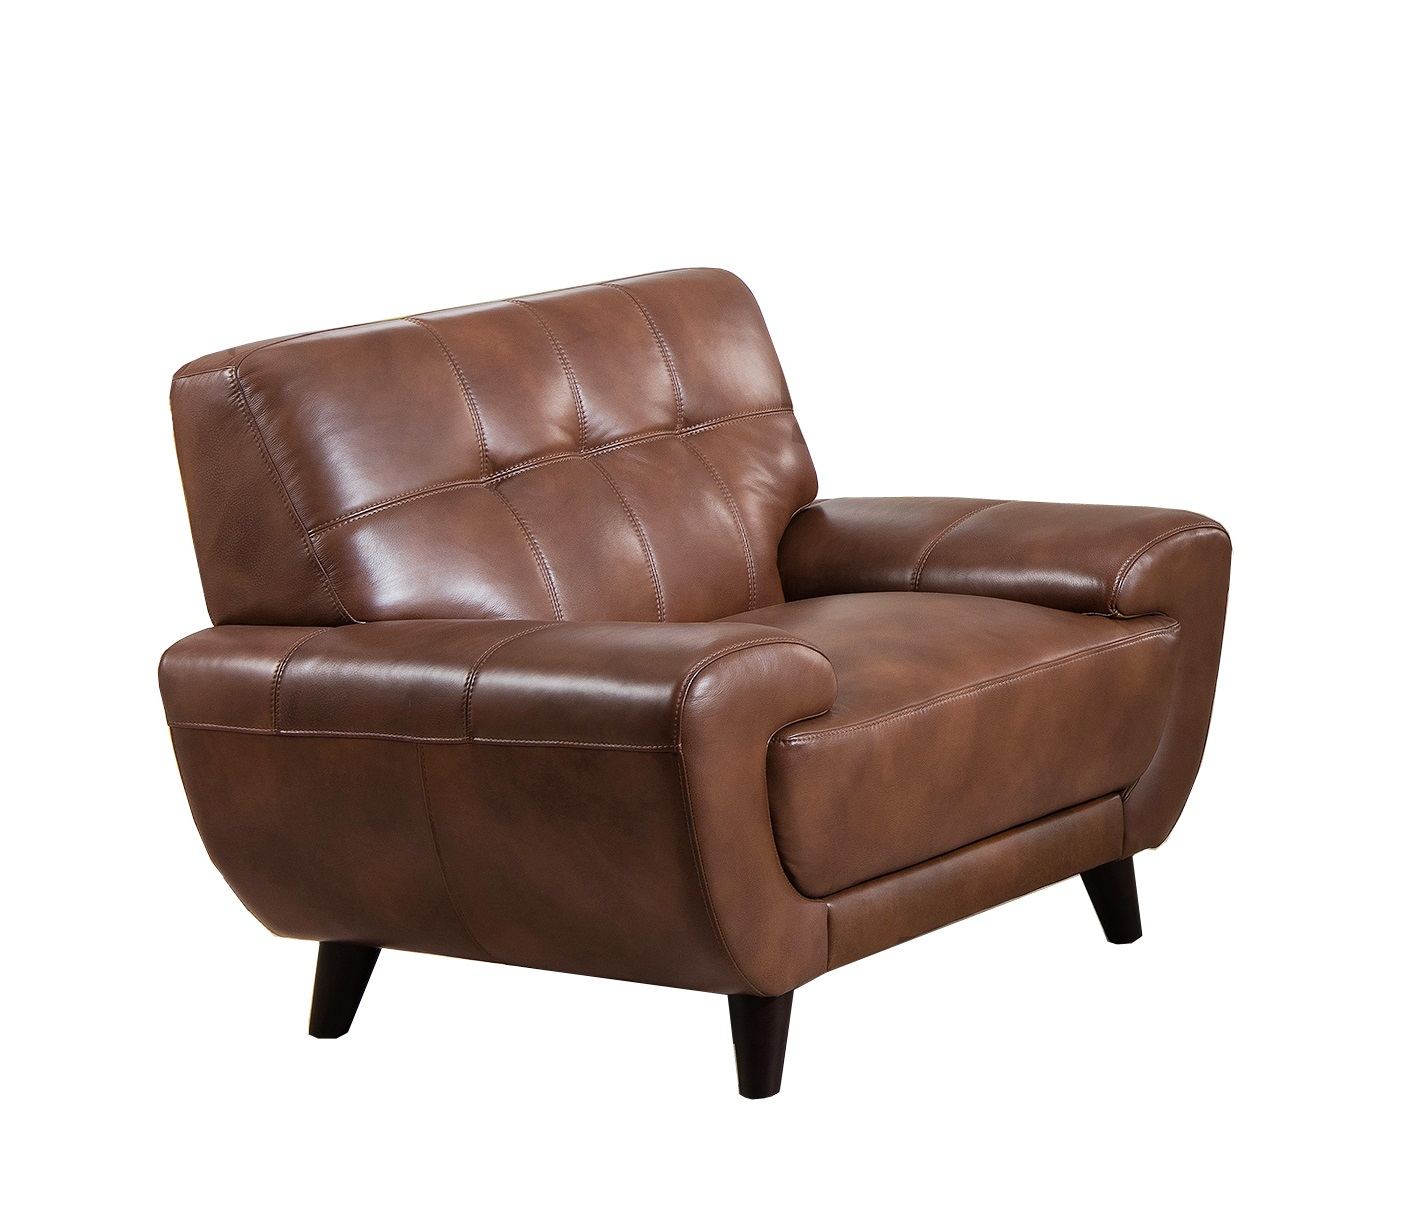 Best Leather Chairs Jane Furniture Nicole Top Grain Brown Leather Chair Usa